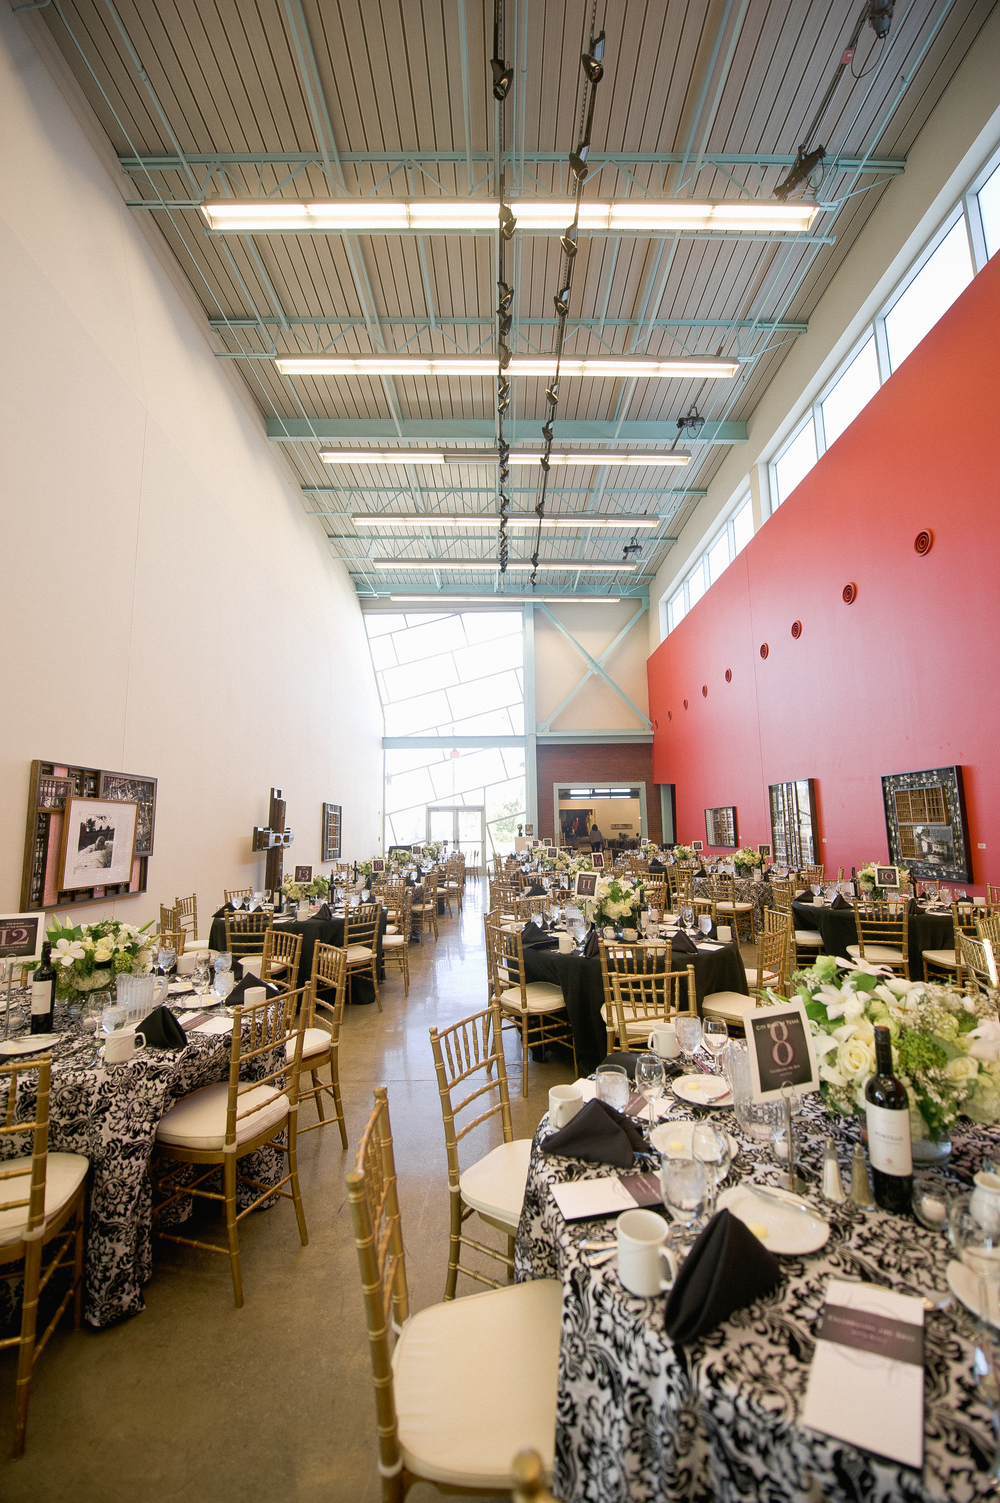 Upscale Elegance Mingled With Contemporary Art Makes This One Of The Most  Desirable Spaces In The City For Your Event. Rental Of The Exhibition Hall  ...